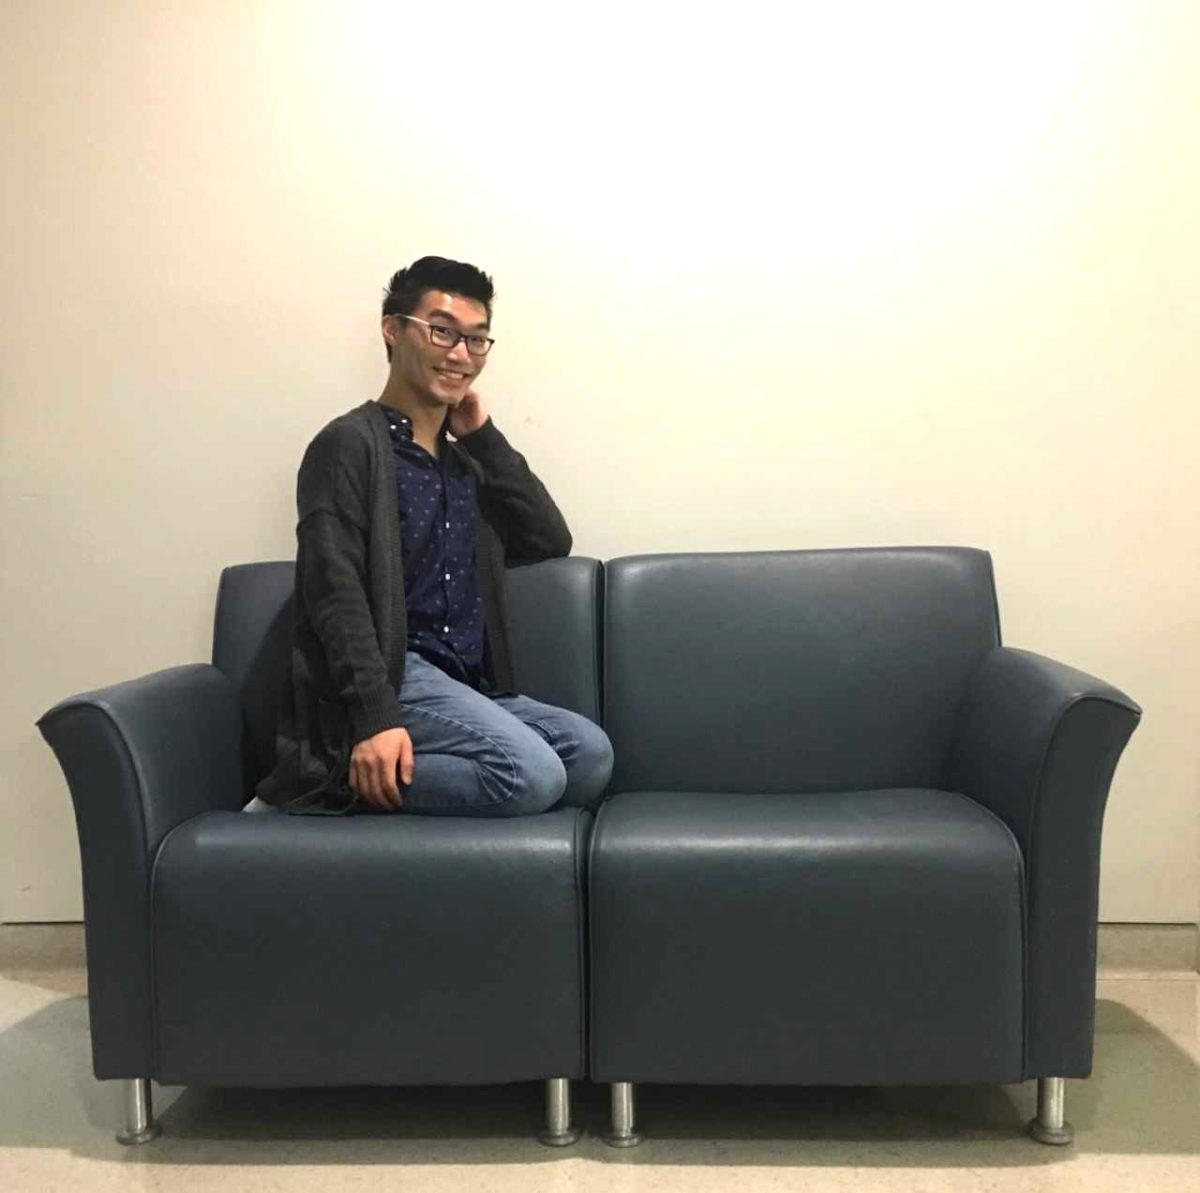 Matt Liu's Big Blue Couch Concert!